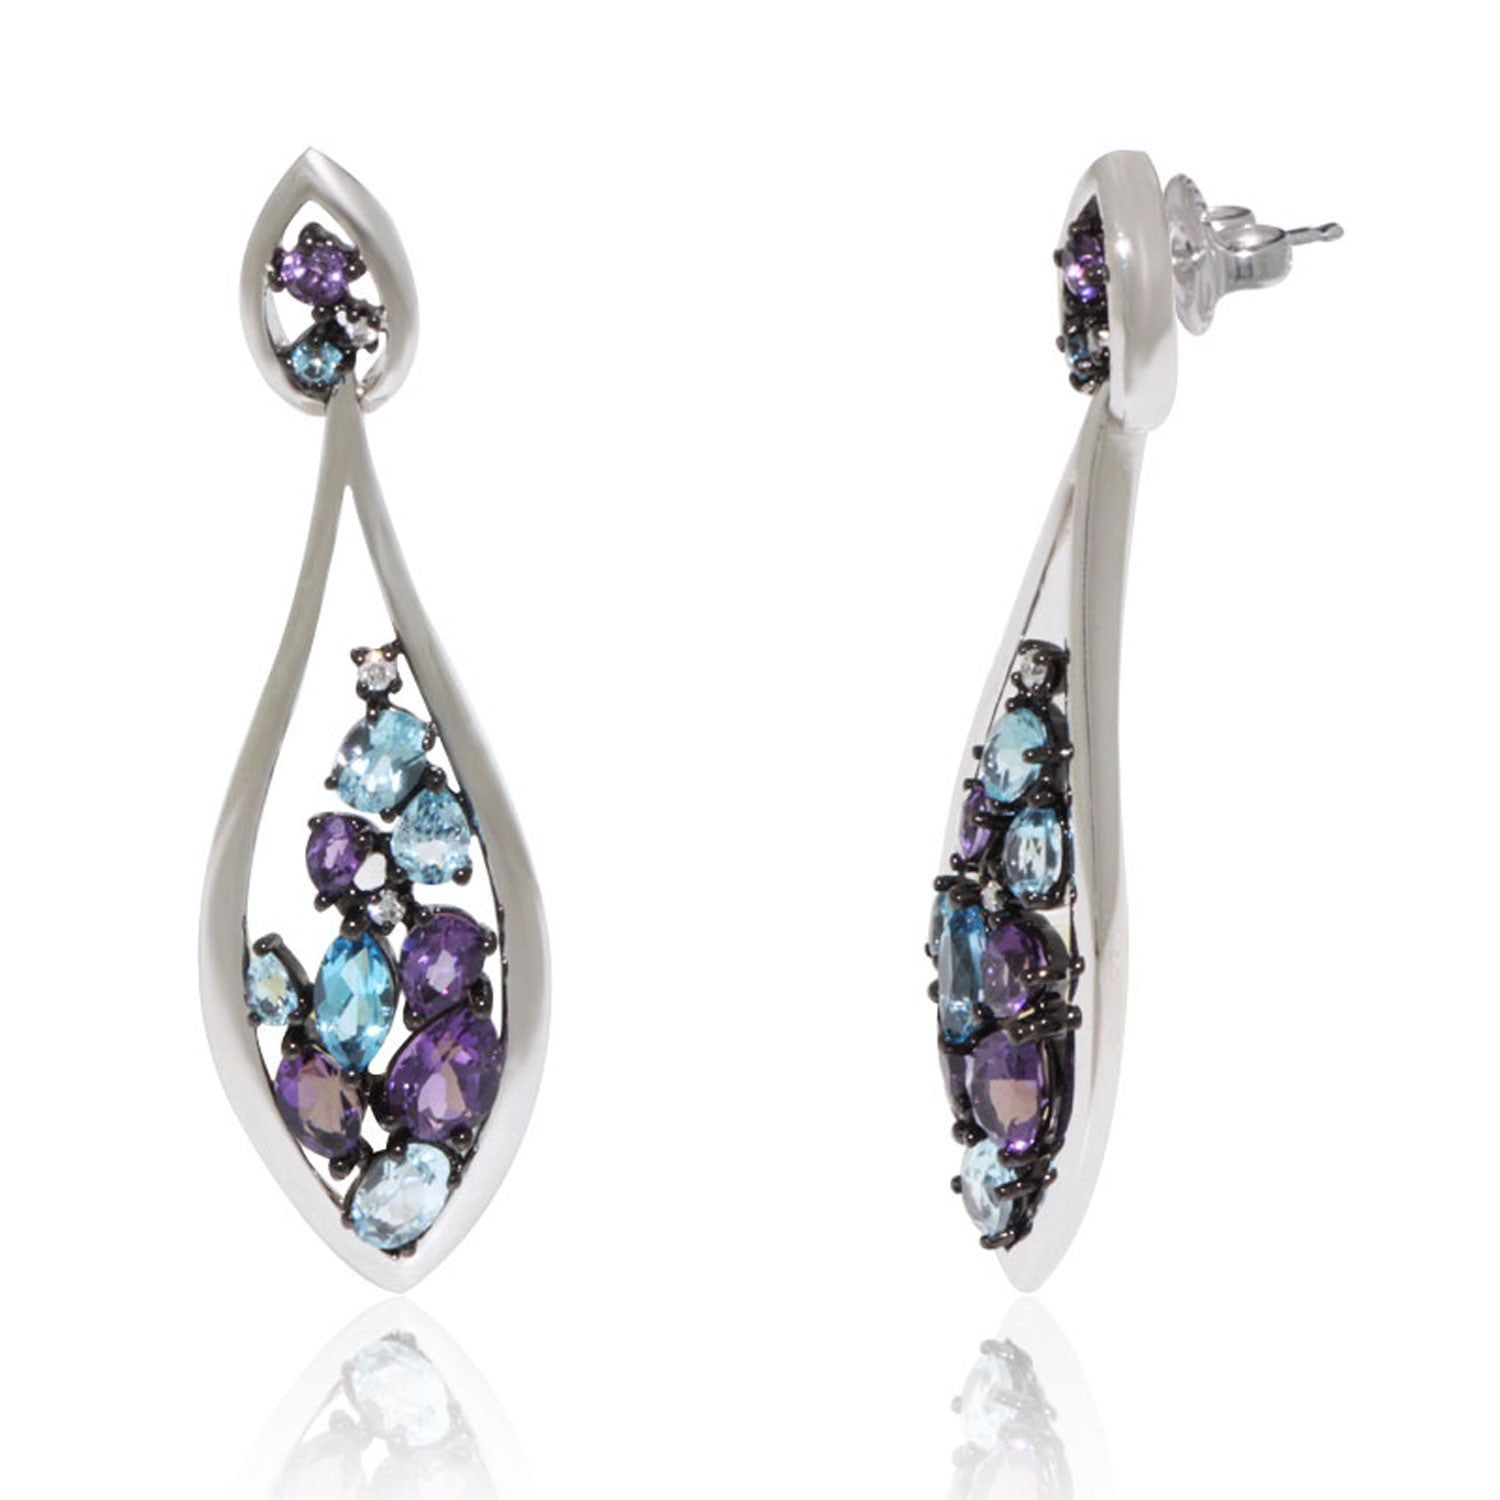 Dangling White Gold Earrings with Blue Topaz and Amethyst – New